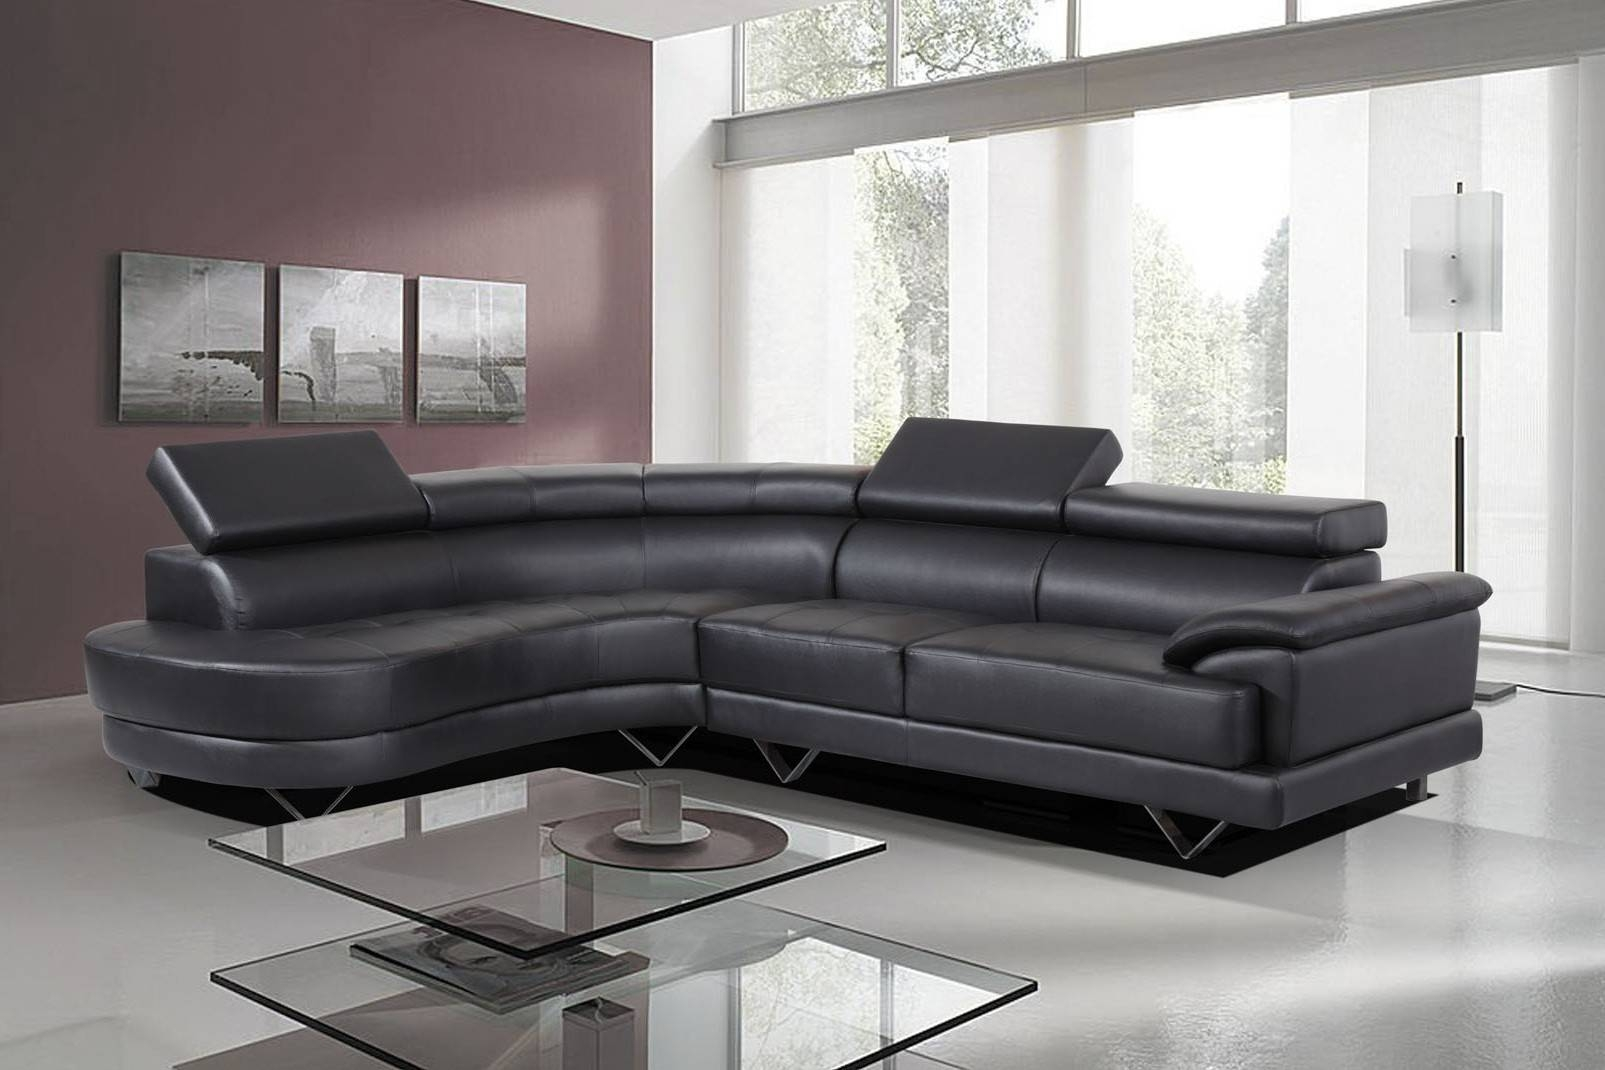 Leather Corner Sofas Suppliers - Aftdth in Leather Corner Sofas (Image 22 of 30)